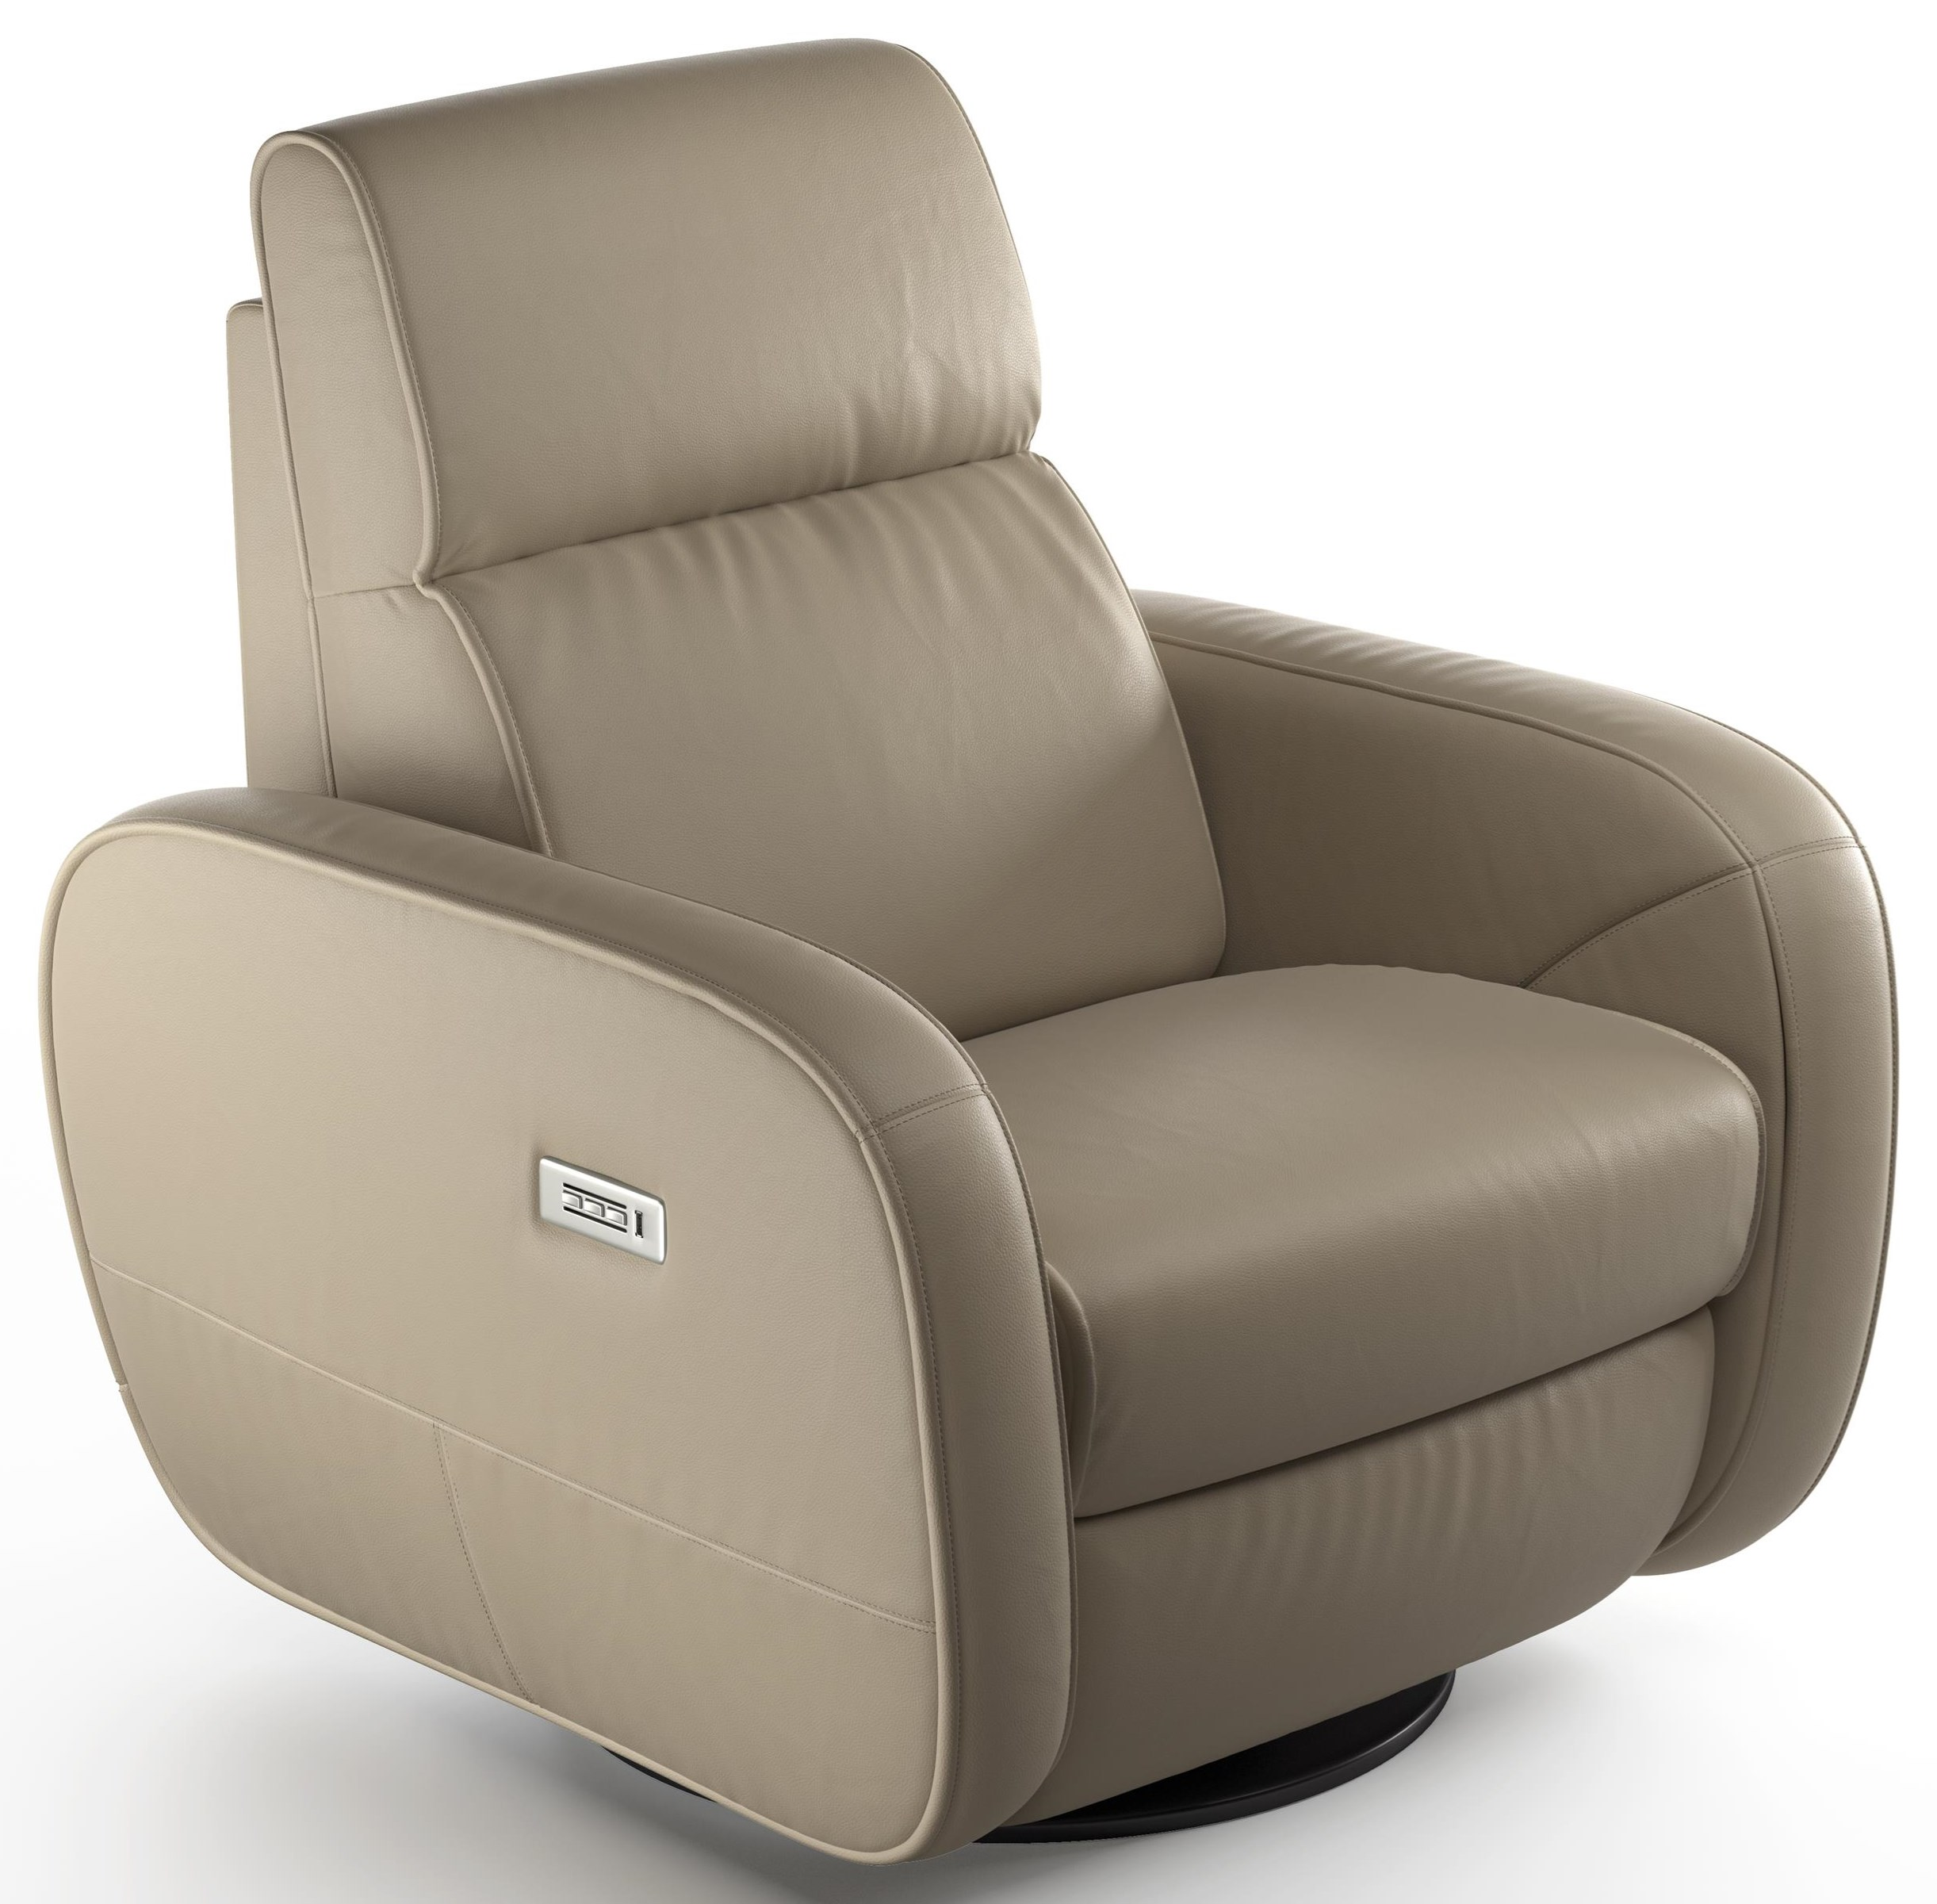 Altruista Triple Power Recliner by Natuzzi Editions at Baer's Furniture